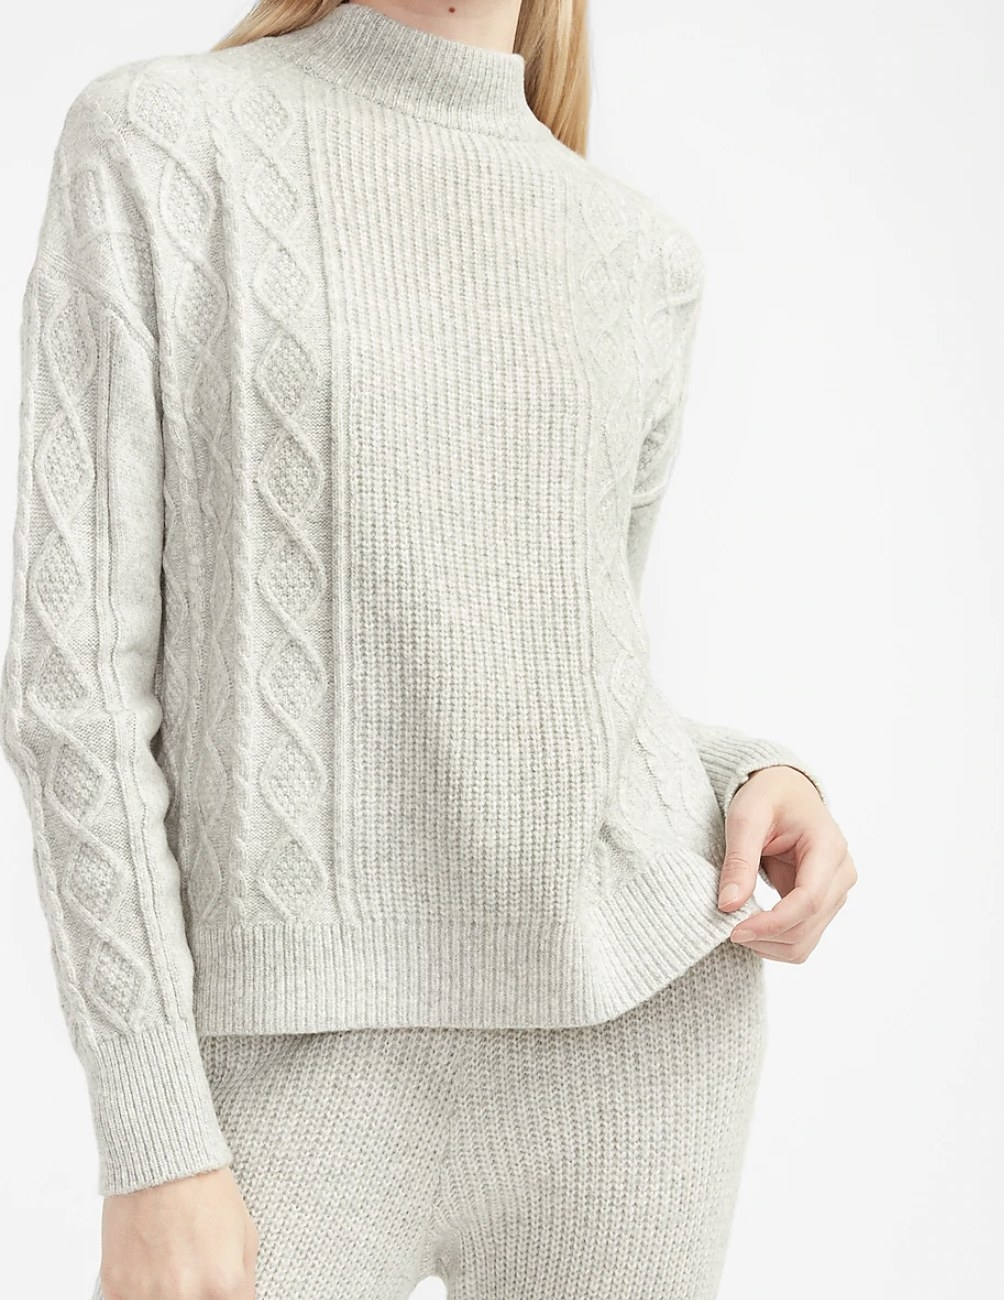 a cable-knit mock-neck sweater in heather gray